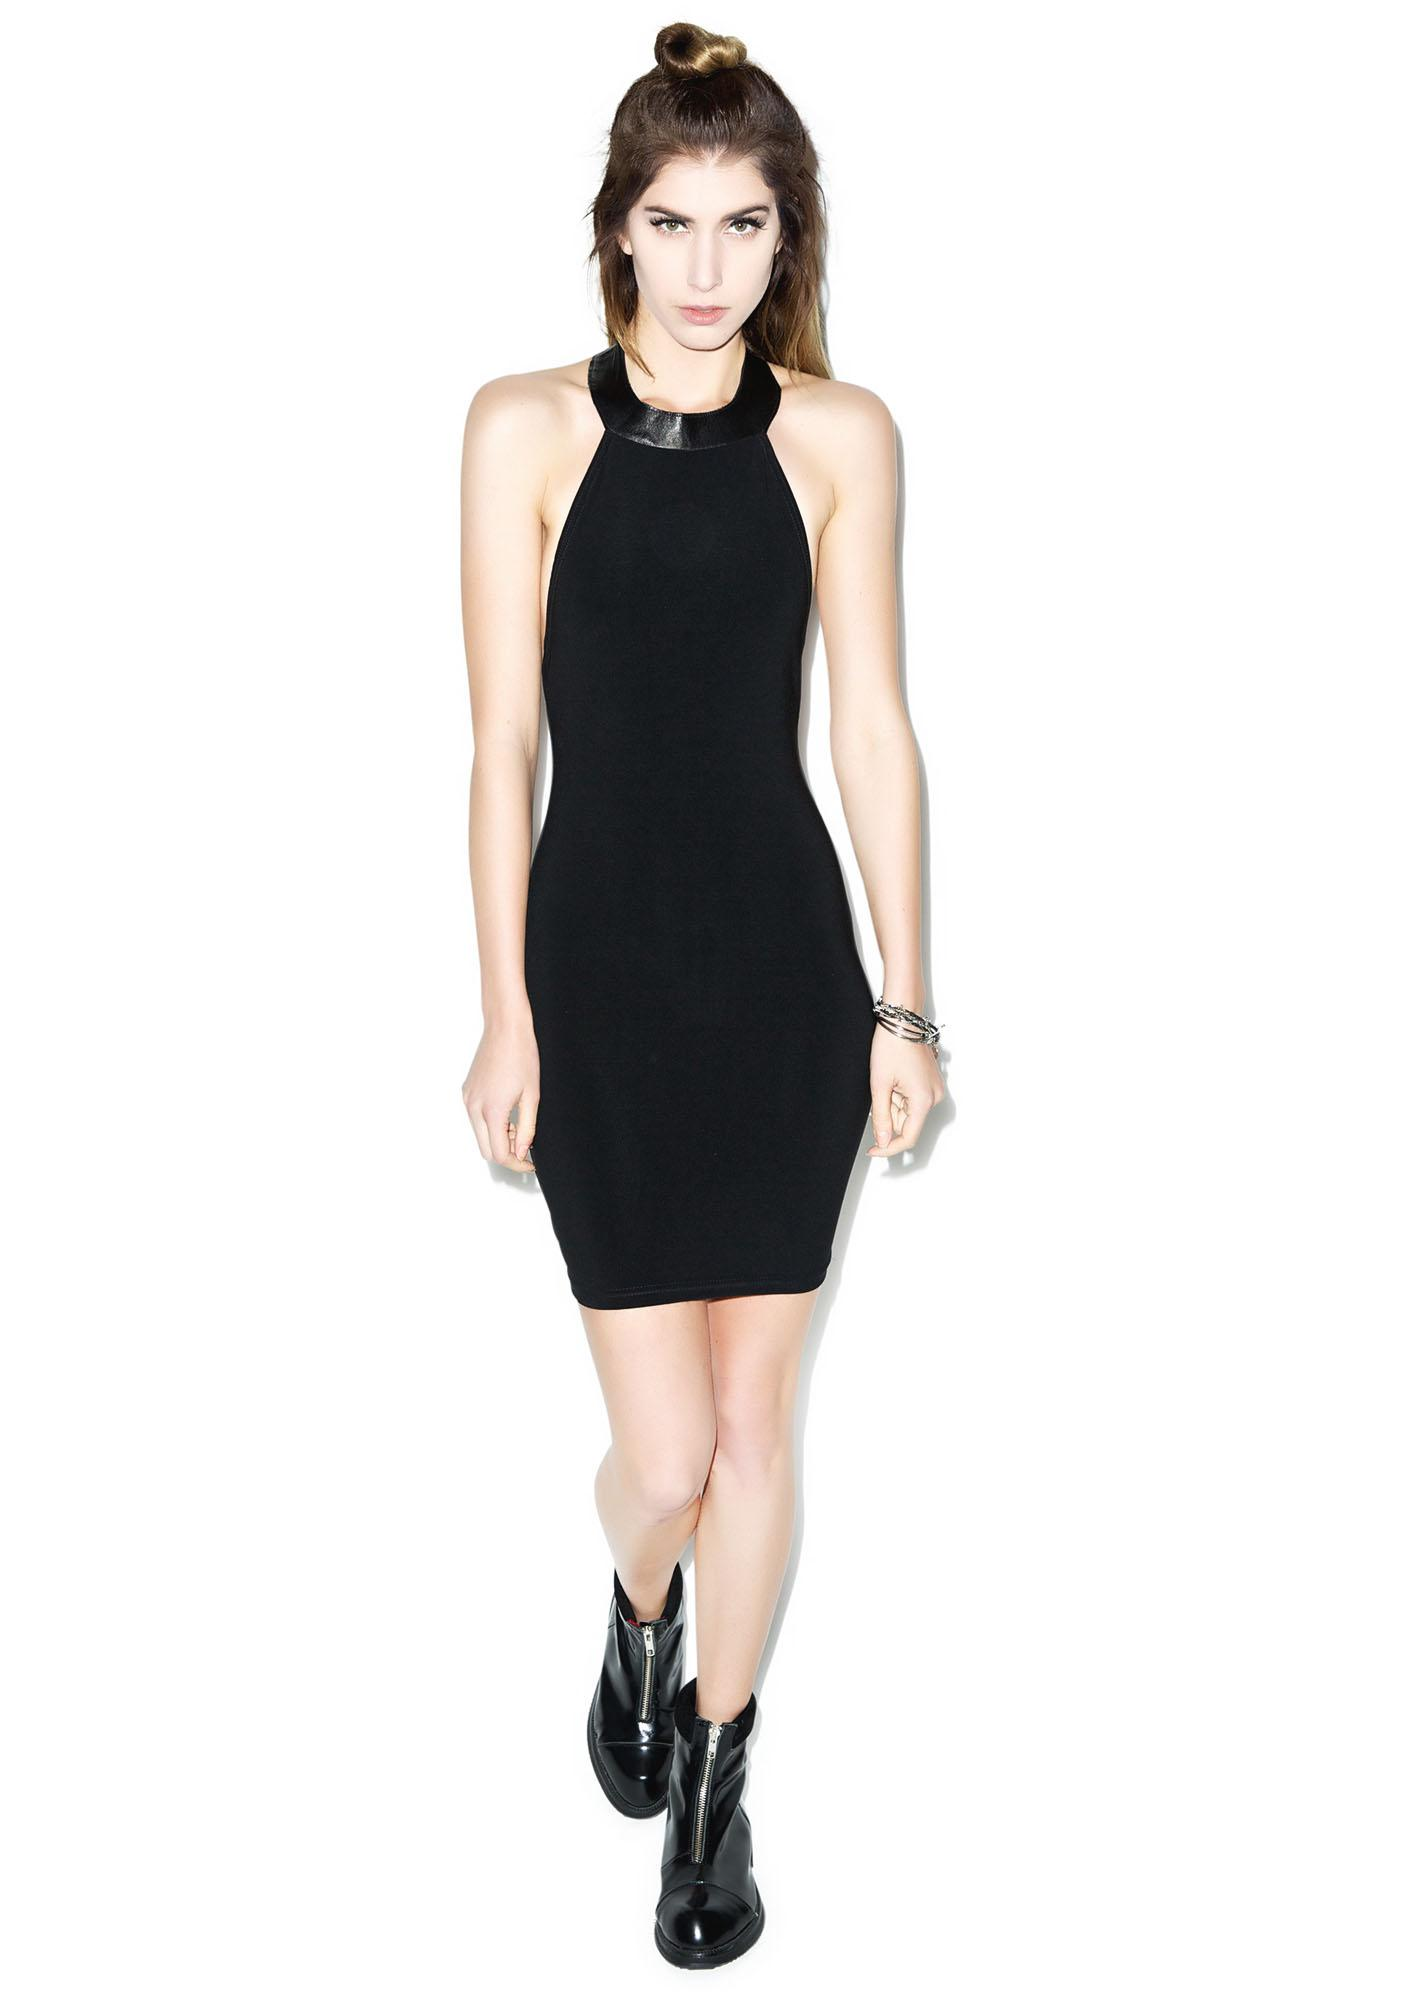 Black Wednesday The Witching Hour Dress